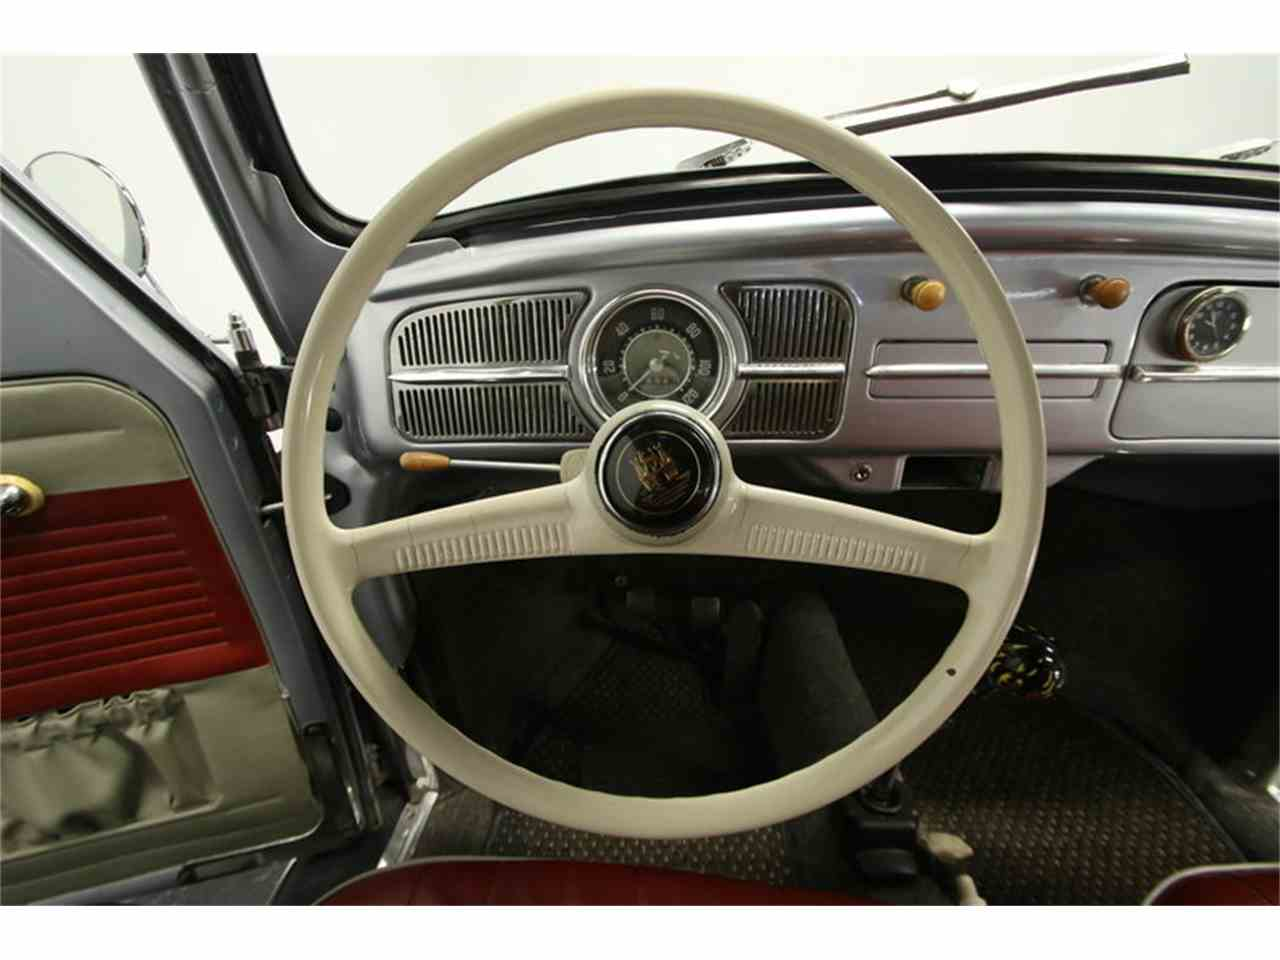 Large Picture of '60 Volkswagen Beetle - $19,995.00 Offered by Streetside Classics - Tampa - M7TJ